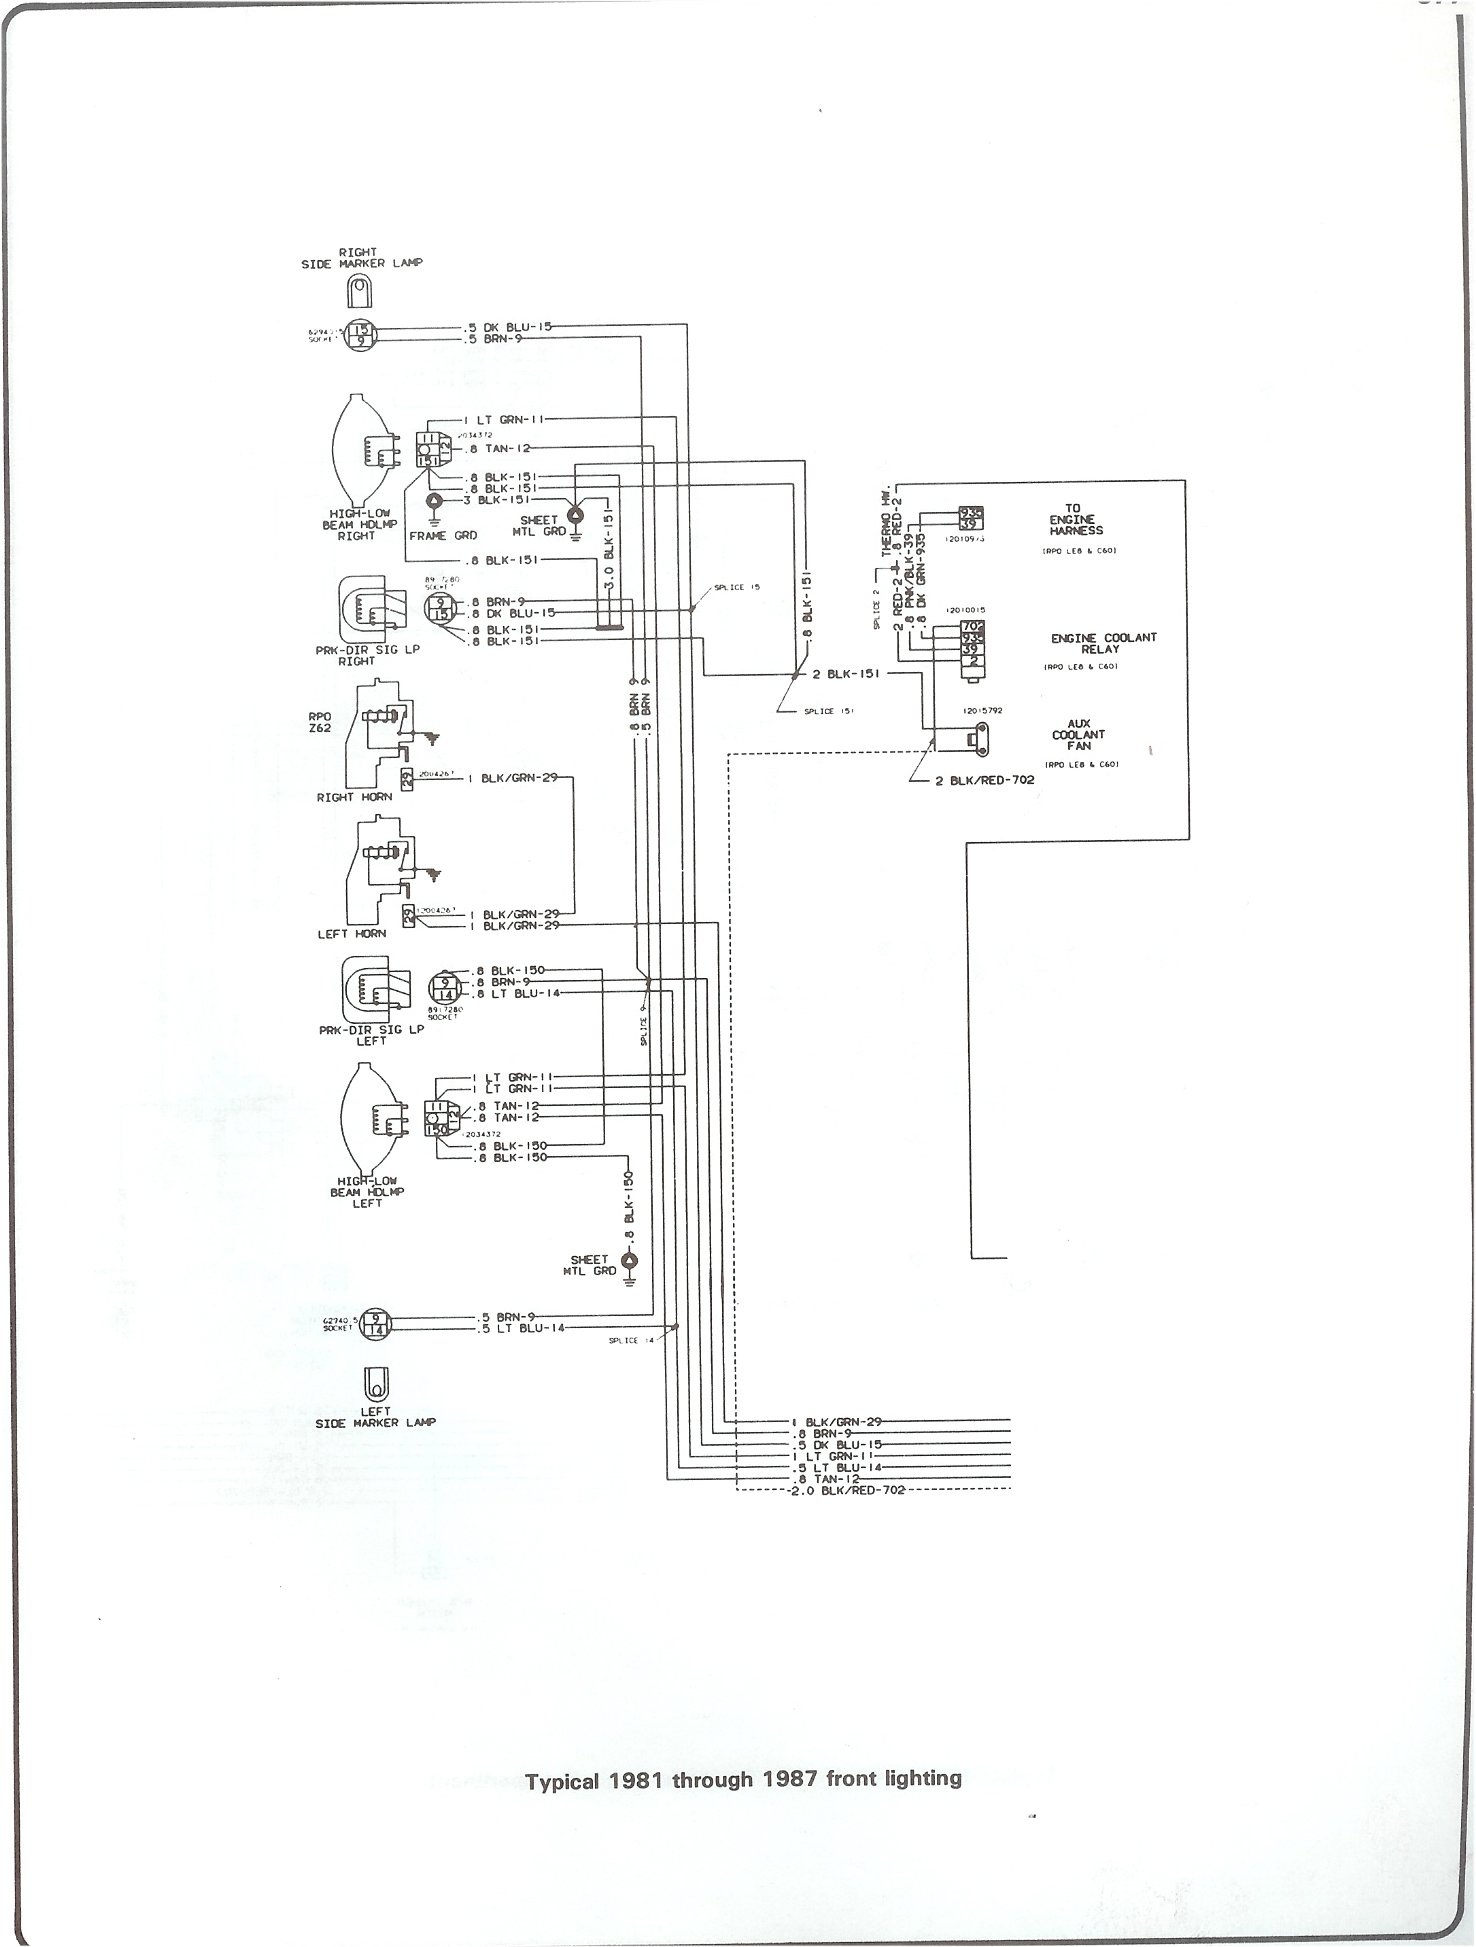 S15 Wiring Diagram Library 1994 Chevrolet Silverado Radio Complete 73 87 Diagrams Rh Forum 87chevytrucks Com 1987 Gm